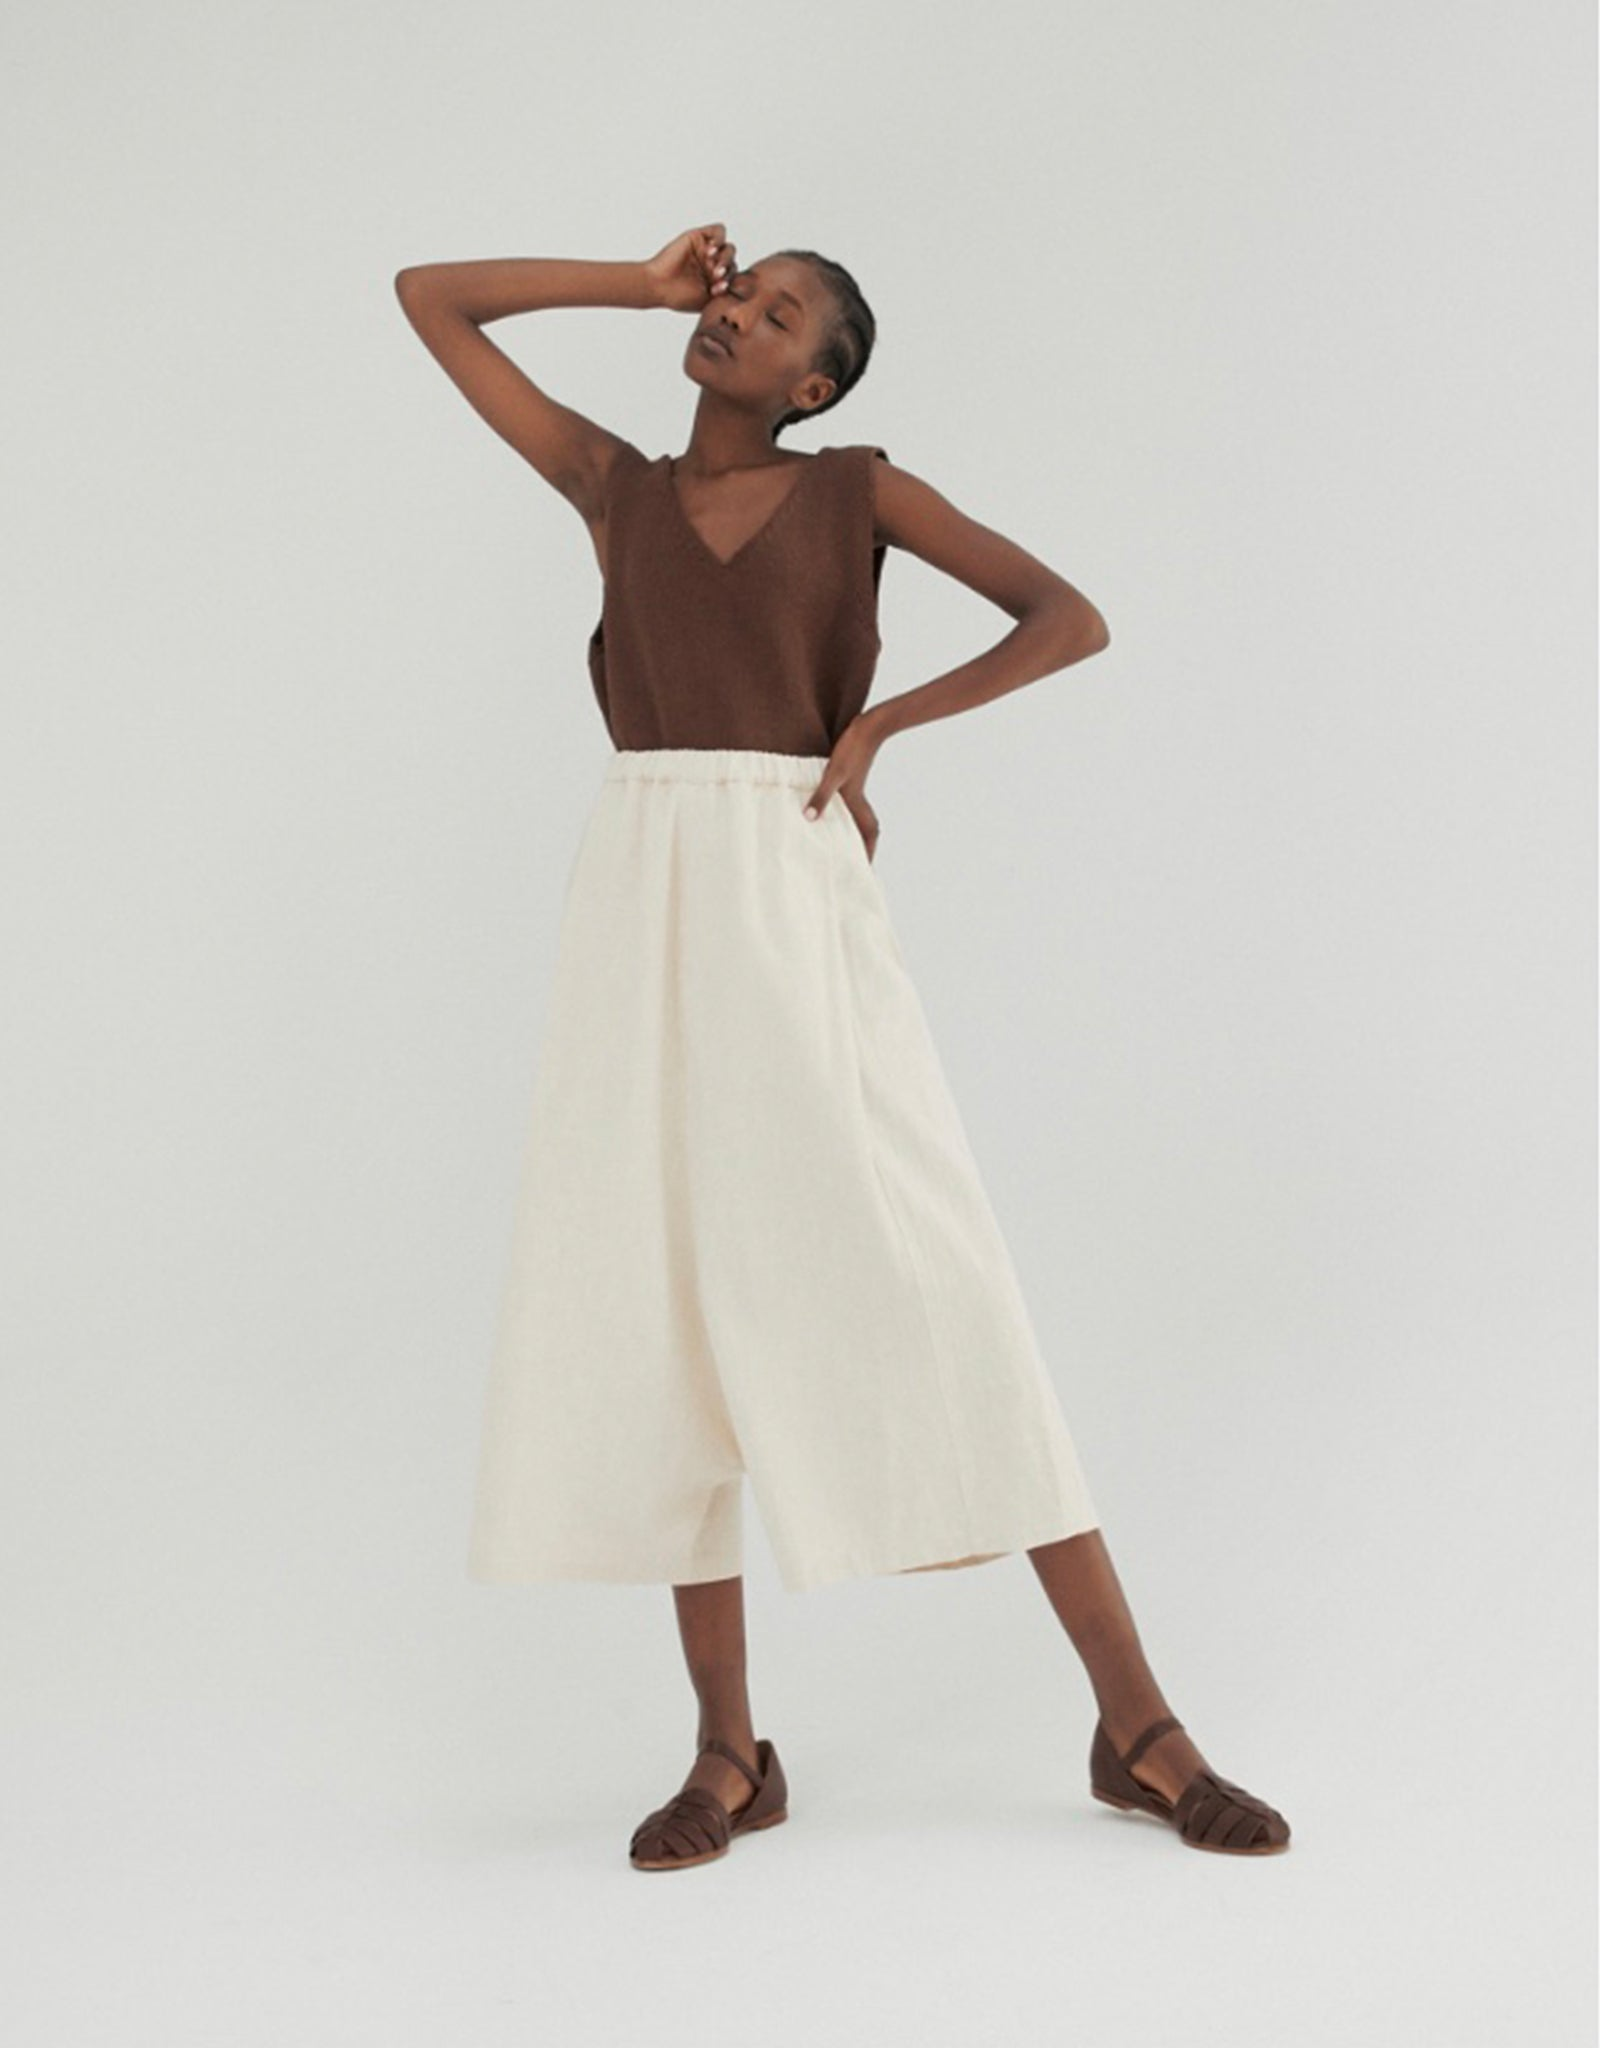 Model in Monica Cordera  Relaxed Ramie Pant in cream, and Jelly Sandel in brown leather from Shop FAWN